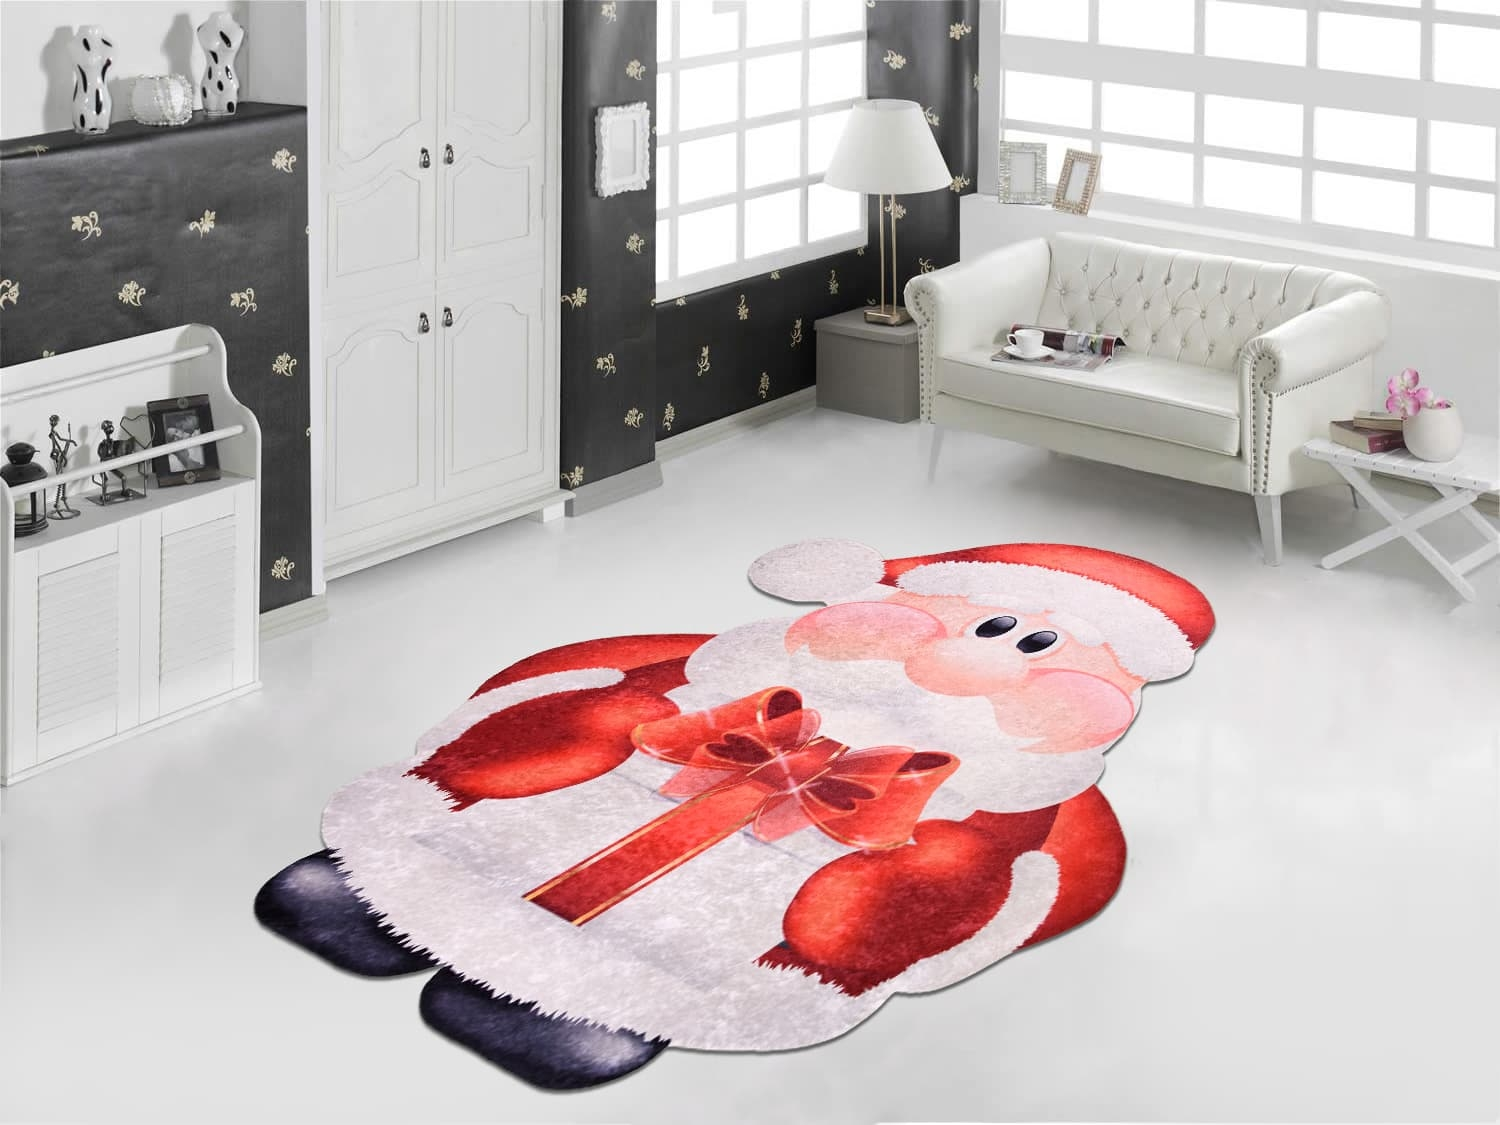 Covor Santa Claus C1003 Multicolor, 60 x 100 cm imagine